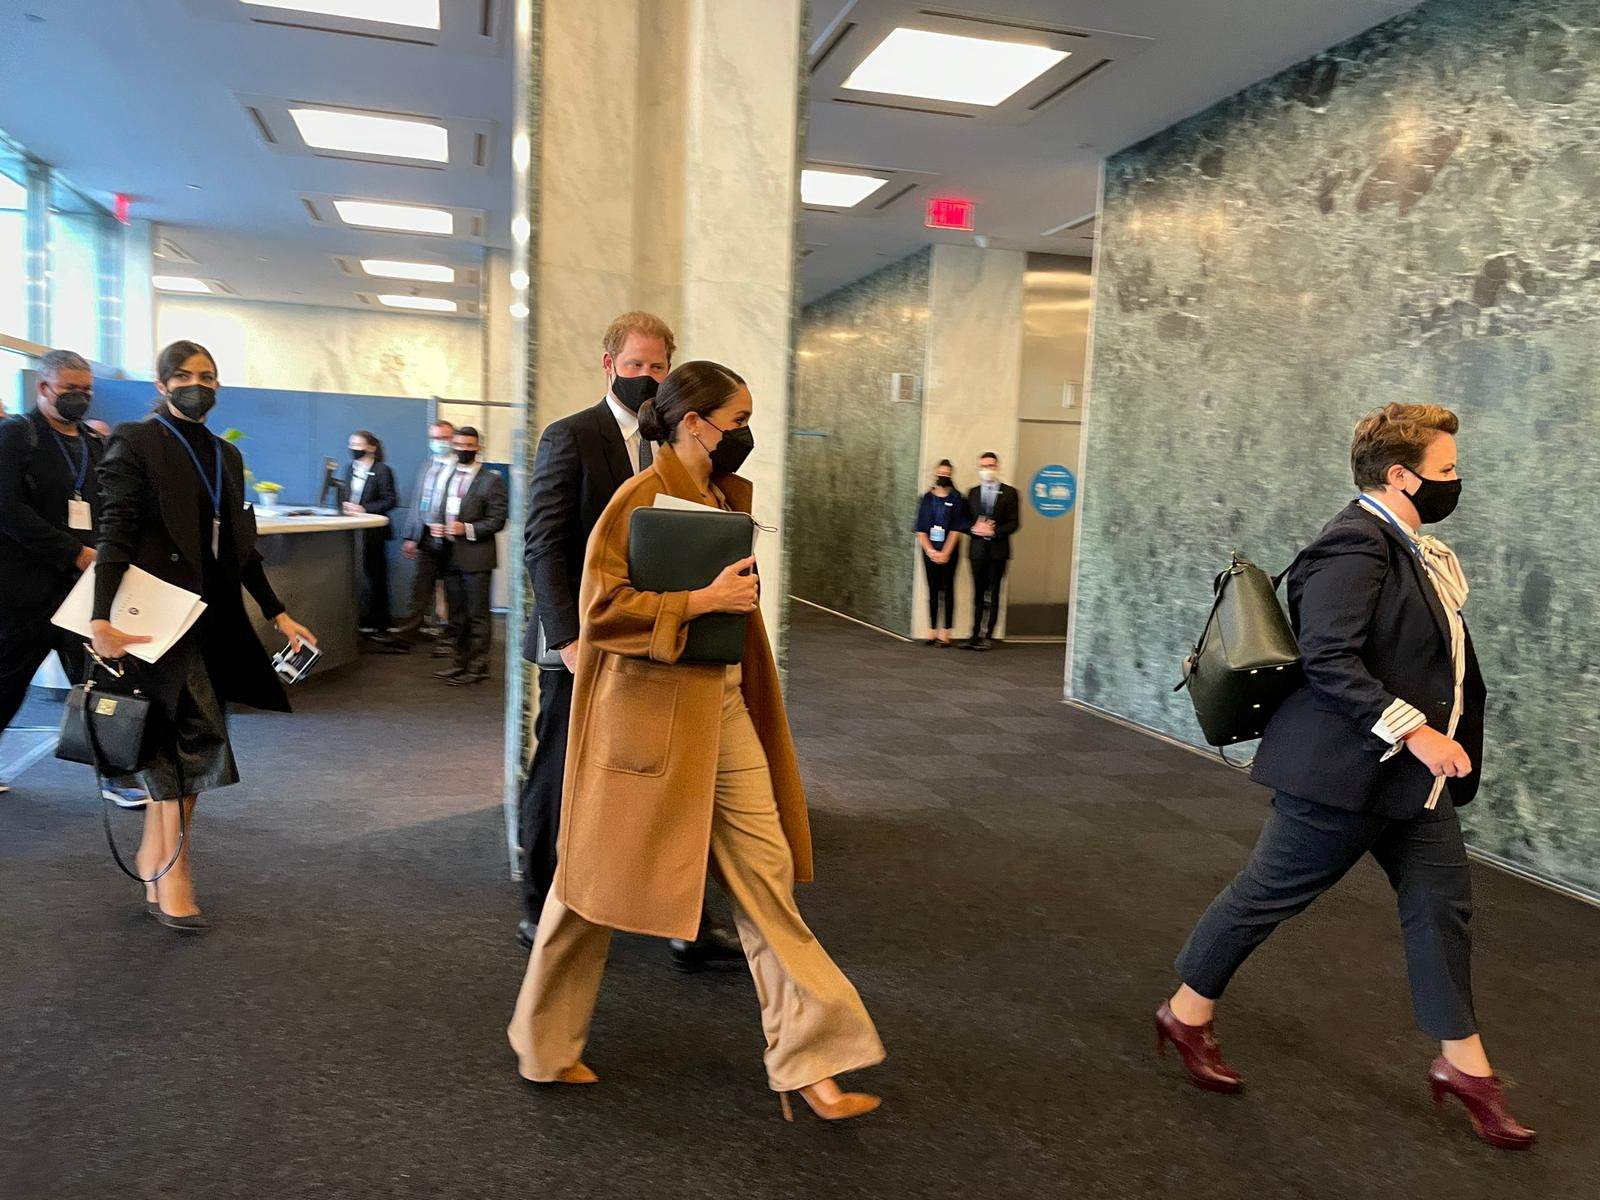 Prince Harry and Meghan Markle arrive at the United Nations to meet with U.N. Deputy Secretary-General Amina Mohammed, in New York City, U.S., September 25, 2021. REUTERS/Daphne Psaledakis